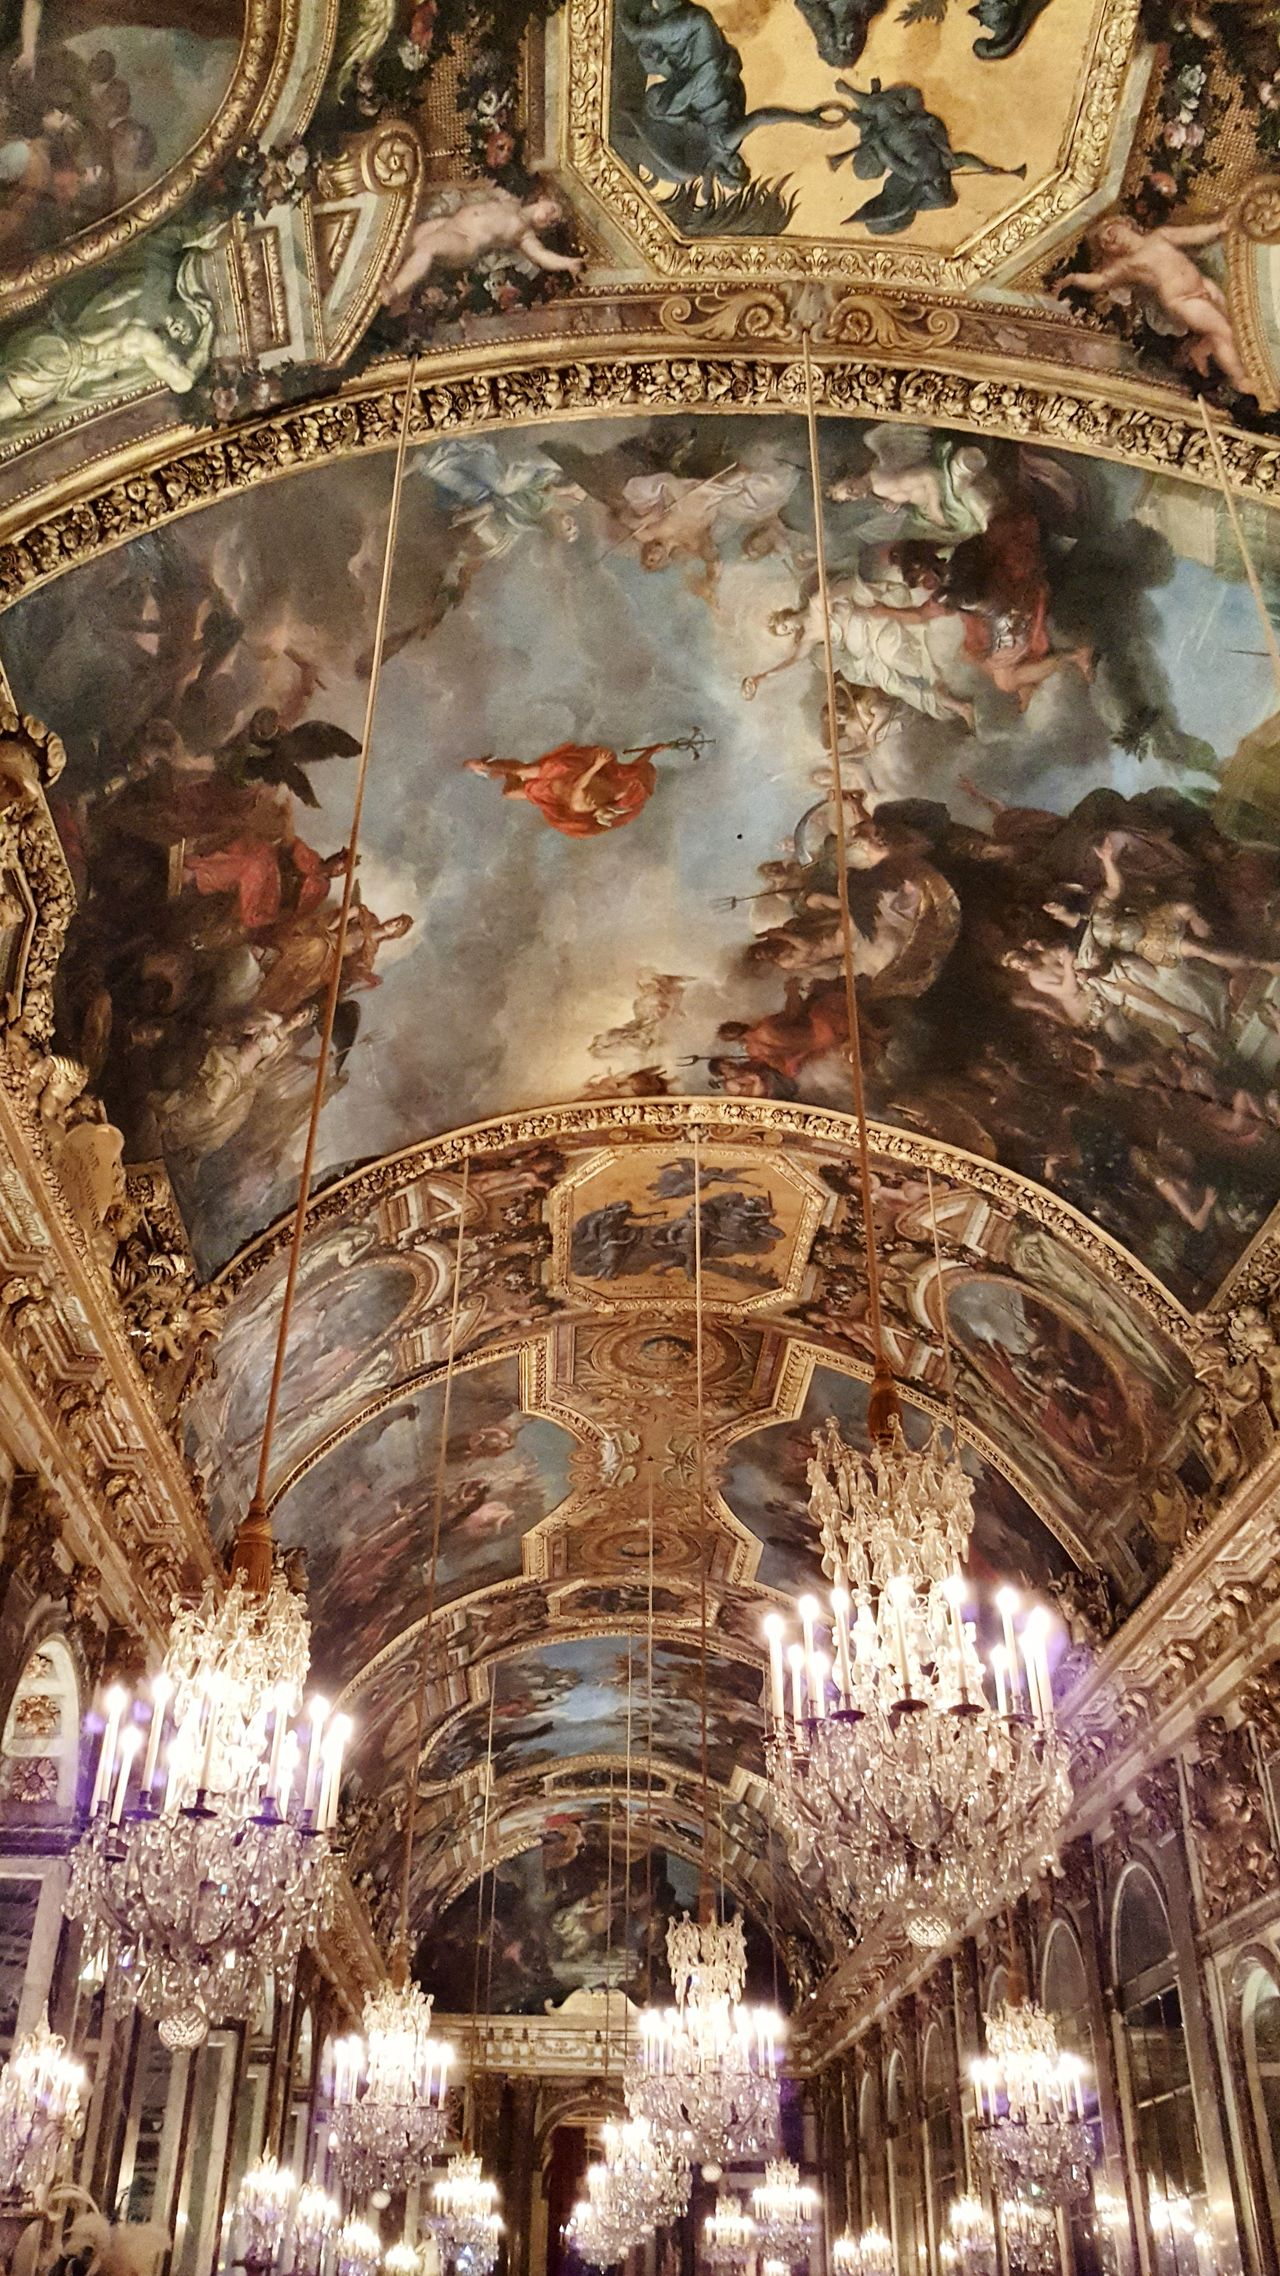 Low Angle View Indoors  Backgrounds Illuminated Full Frame No People Ceiling History Night Versailles Castle Fêtes Galantes Luxury Rococo 18th Century Style Rococo At Night Architecture The Hall Of Mirrors Hall Of Mirrors Chandeliers Chandelier Light Chandelier Lighting Equipment Arch Travel Destinations